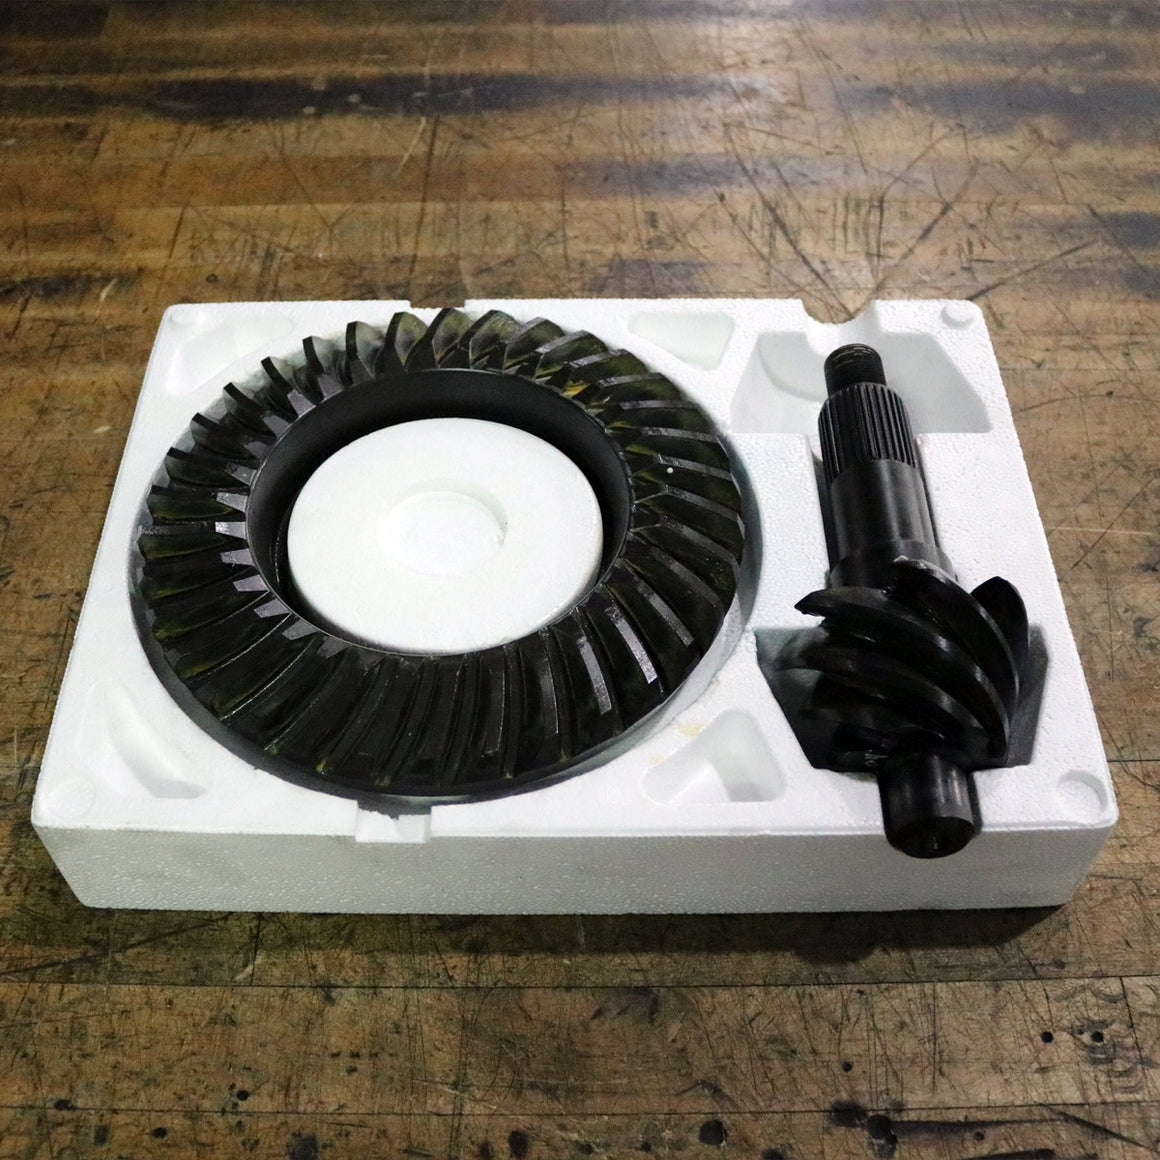 TOMS FORD 9.5 4.86 RING & PINION